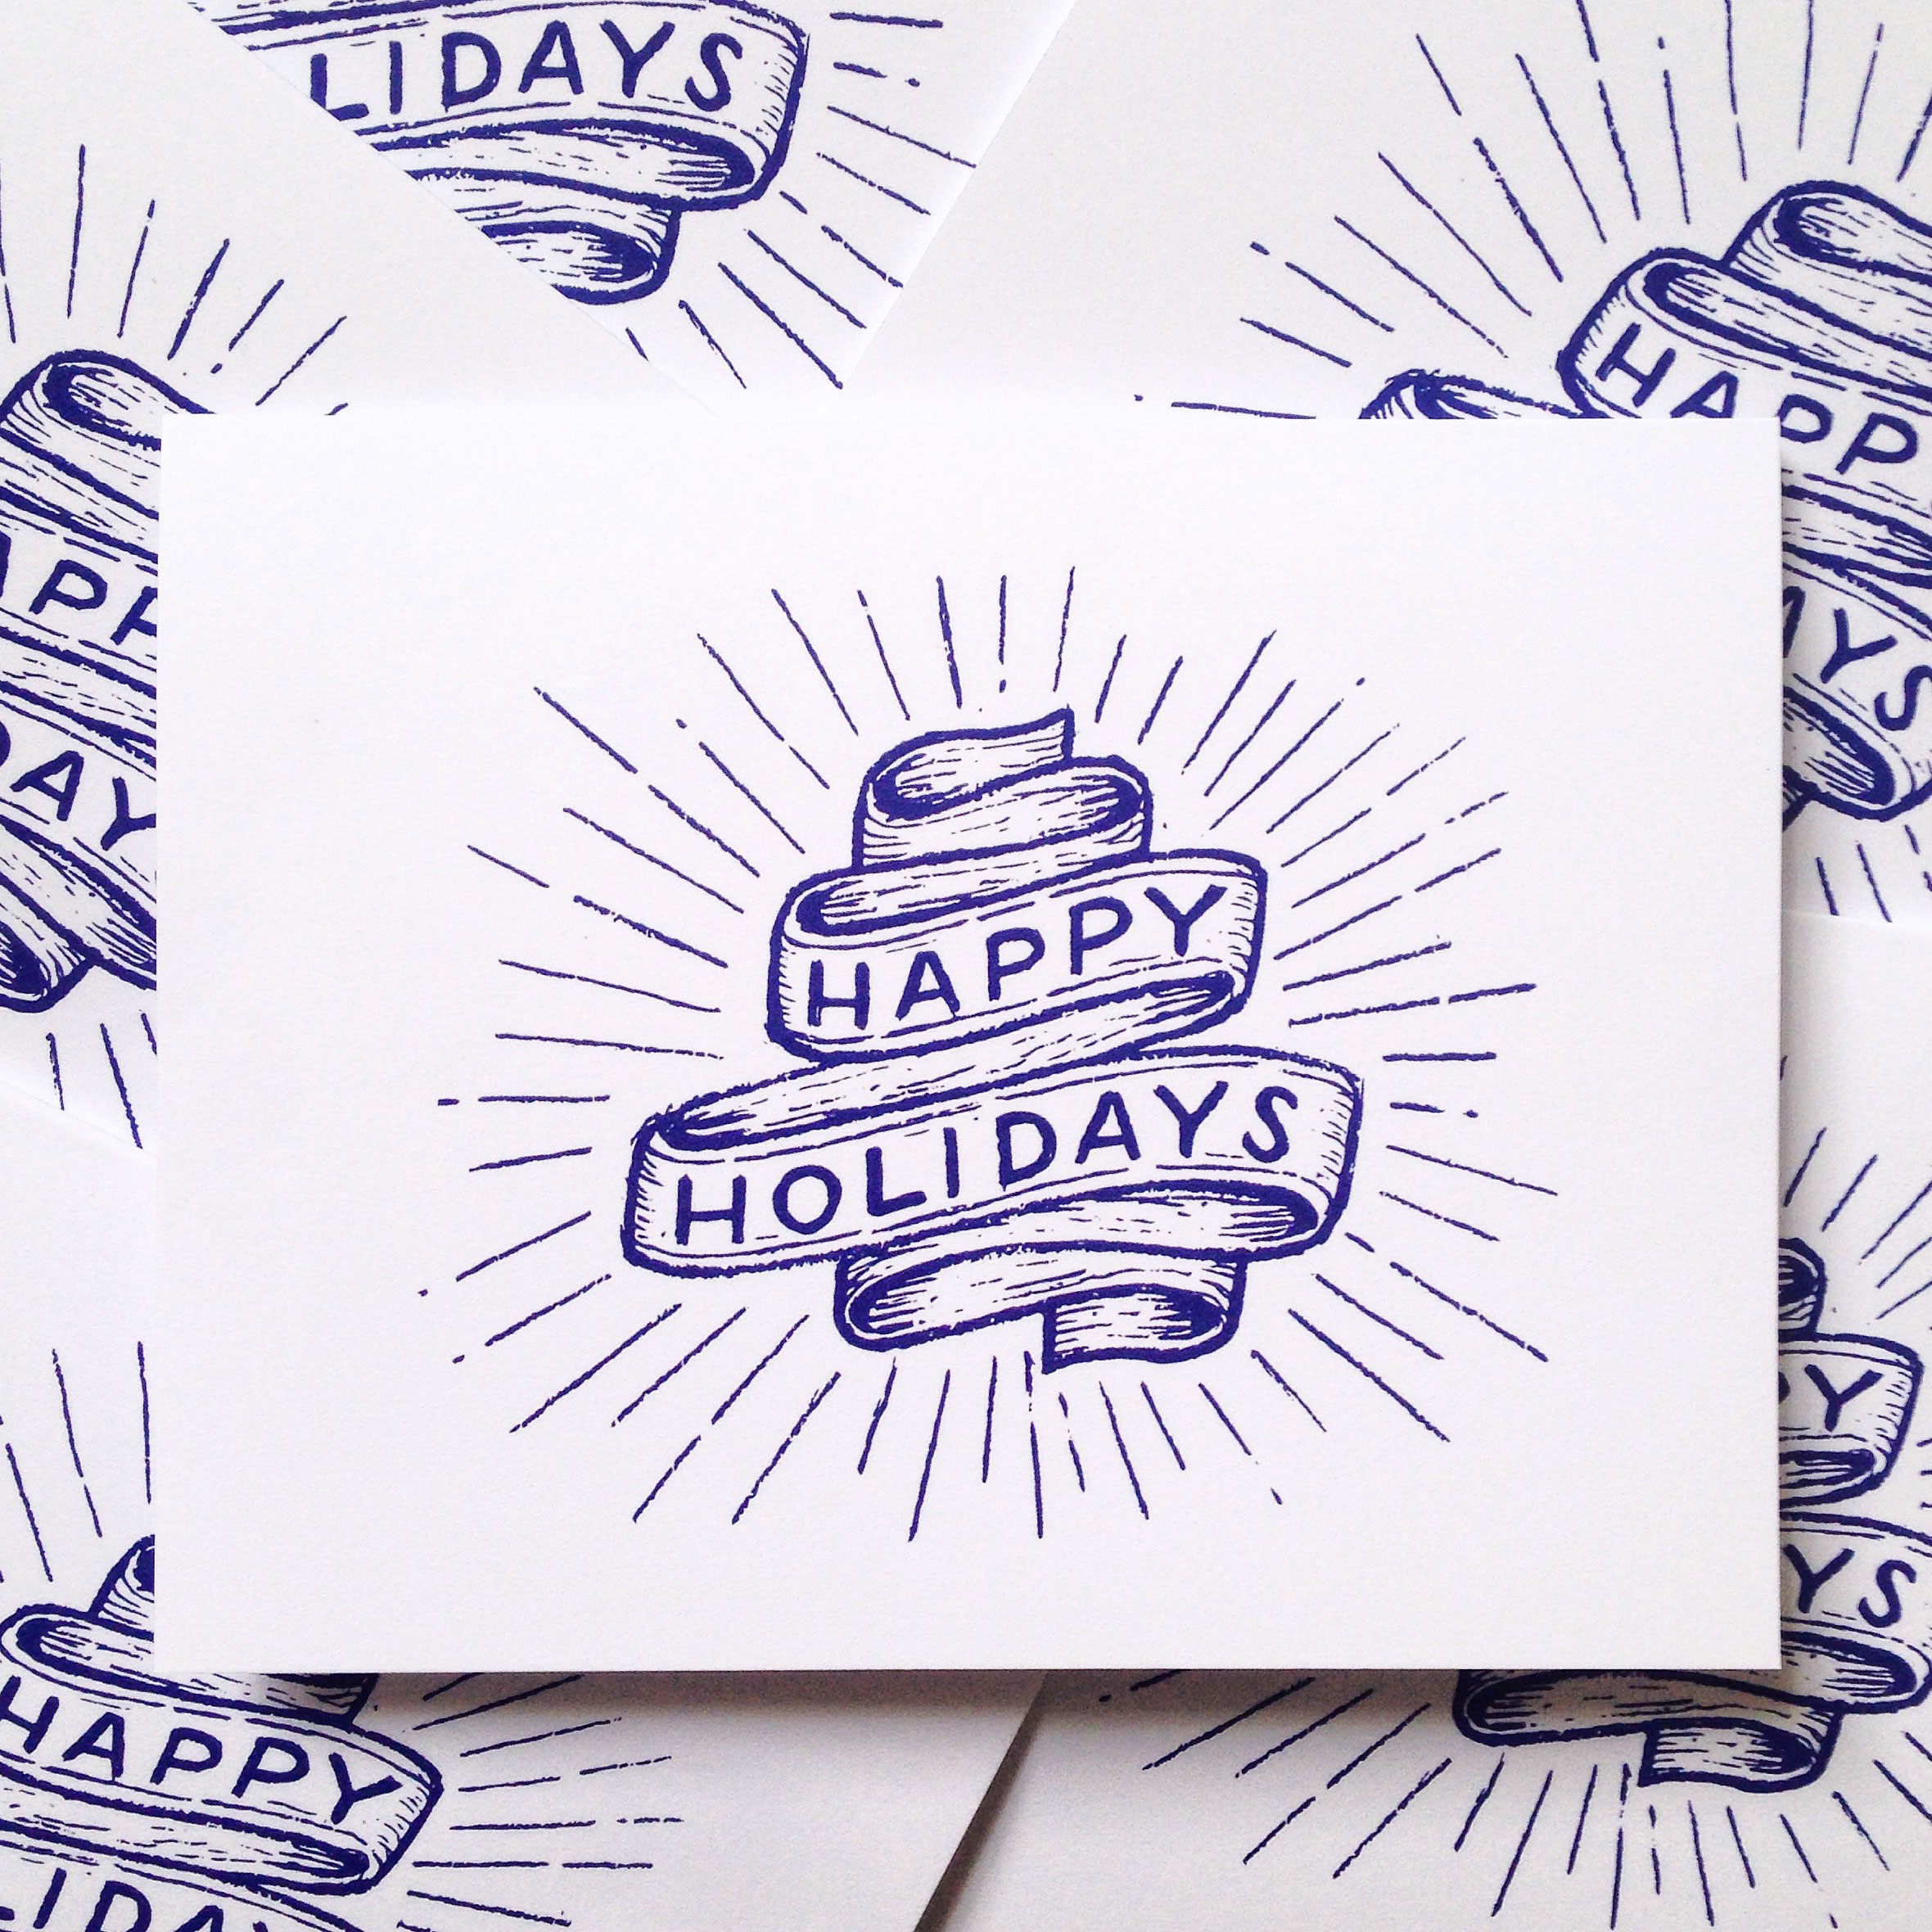 happy-holidays-greeting-card-lettering.jpg